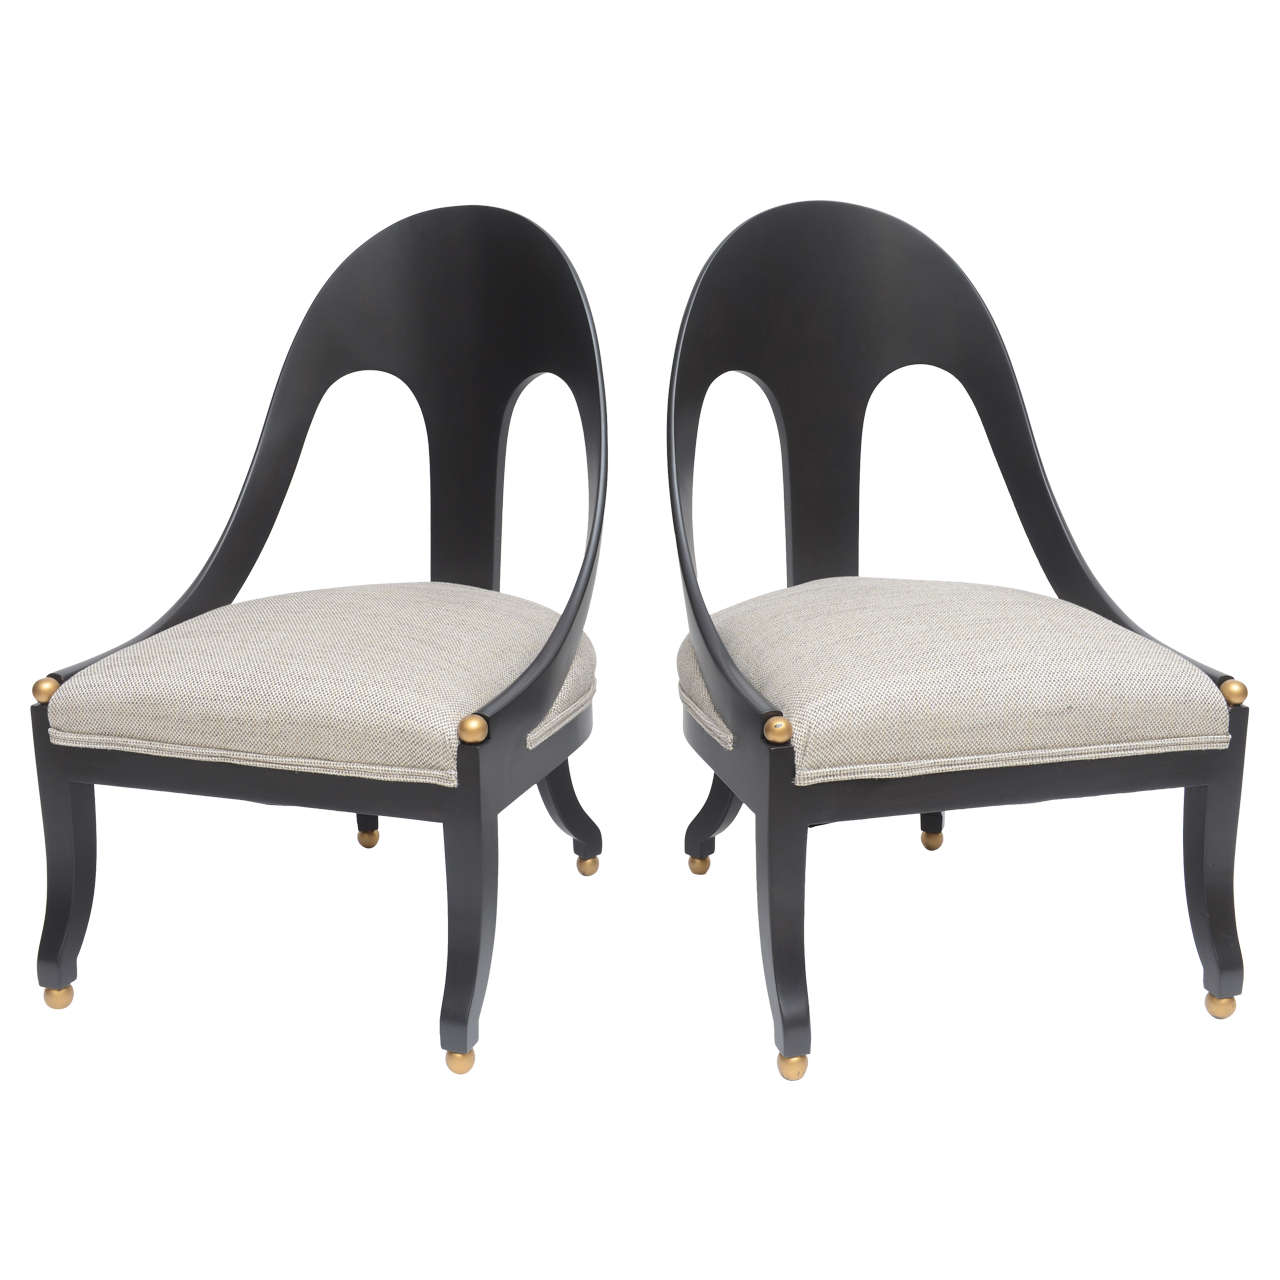 Exceptionnel Pair Of Michael Taylor Chairs For The Baker Furniture Co For Sale